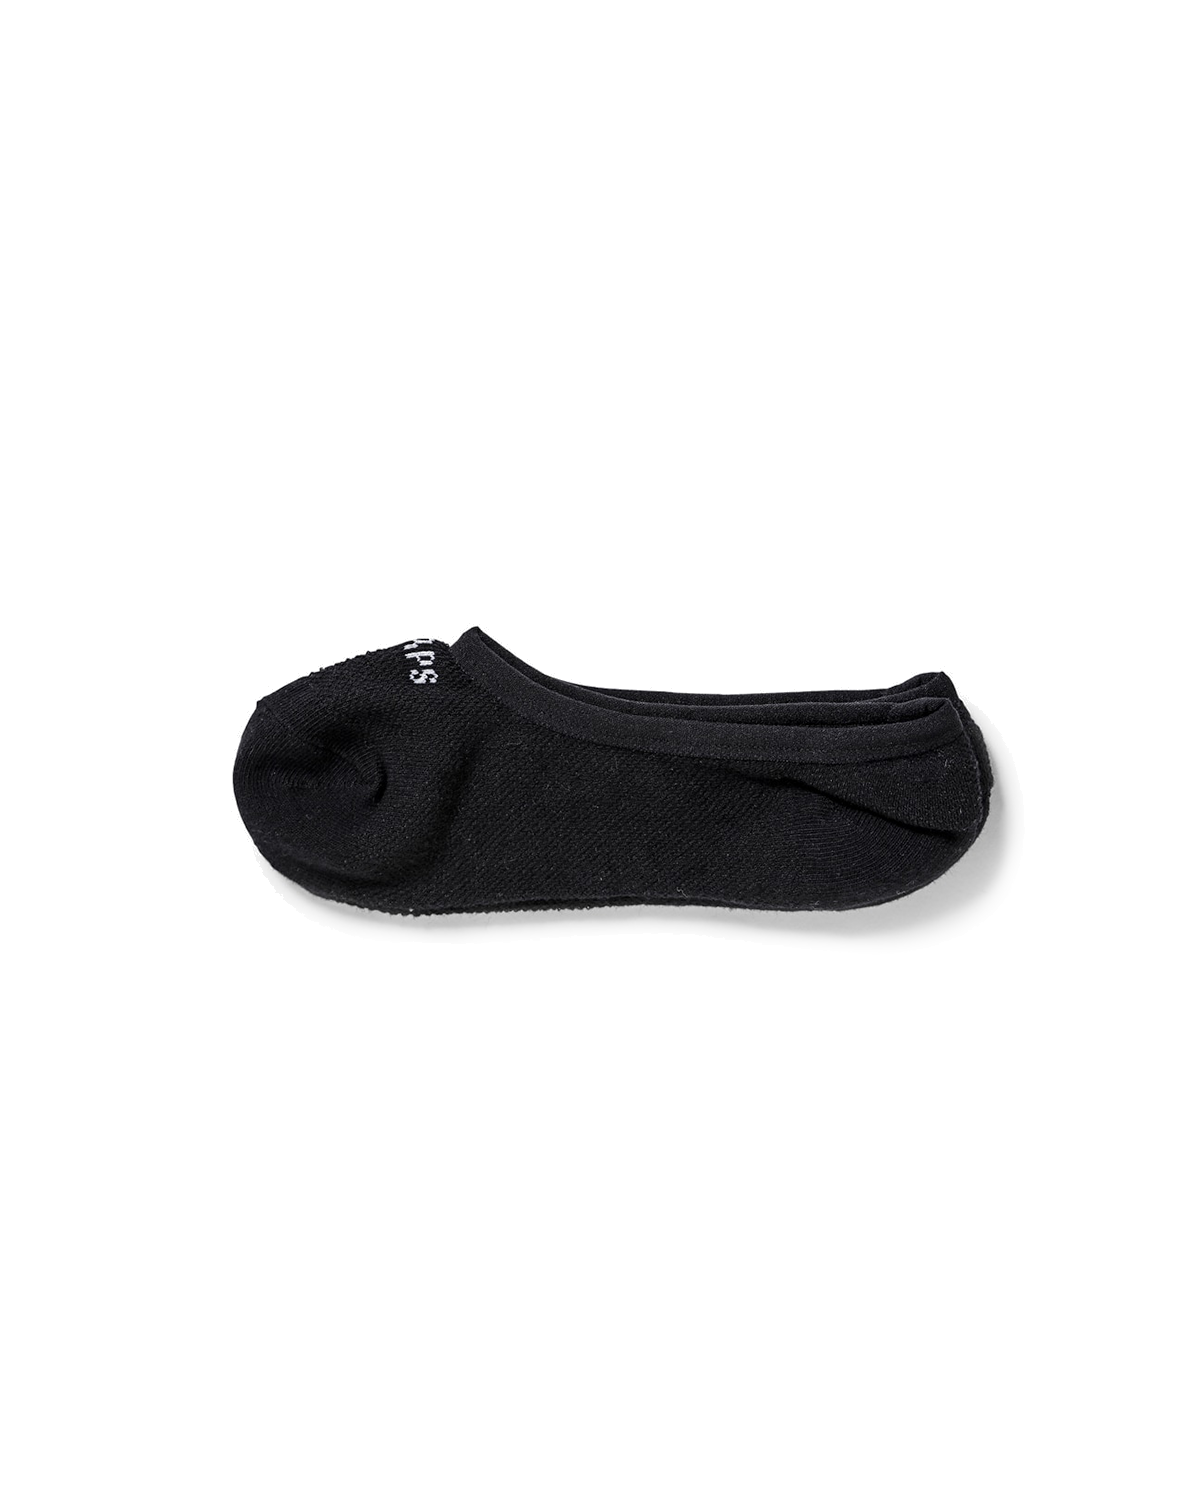 Skivvies No Show 3-Pack Socks Black